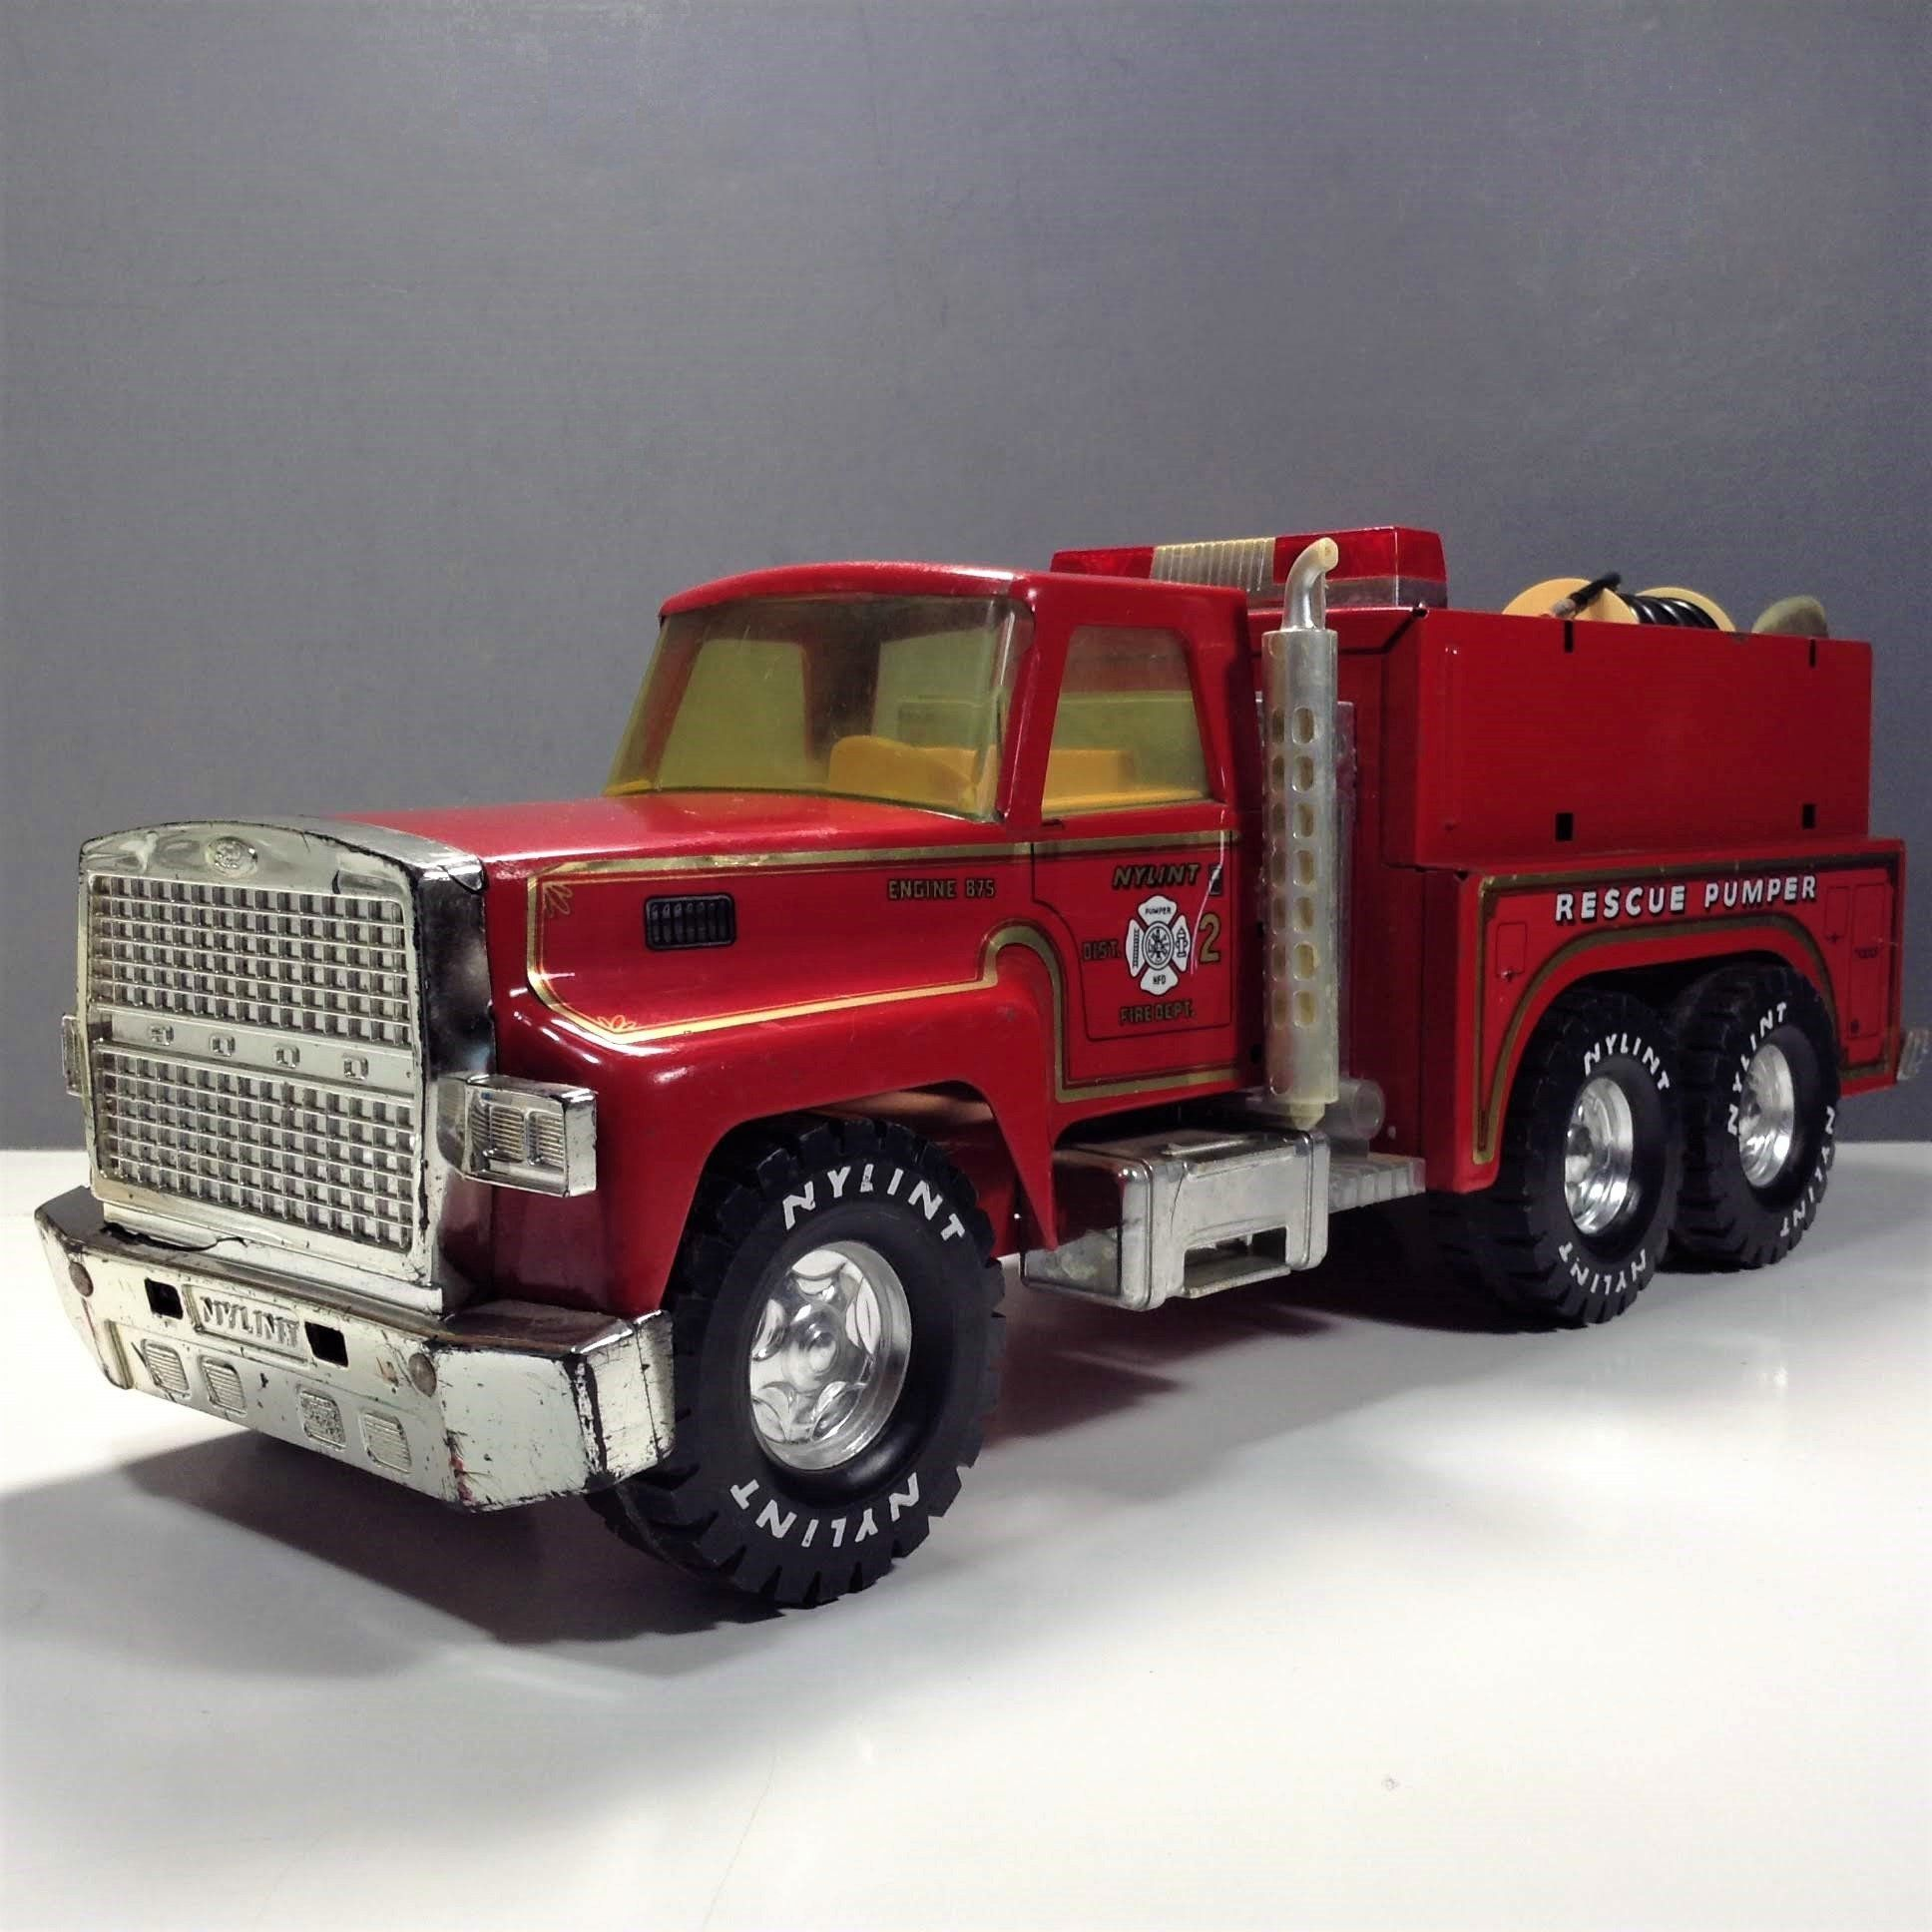 Nylint Rescue Pumper Fire Truck 17 Nylint Fire Engine 875 Ford